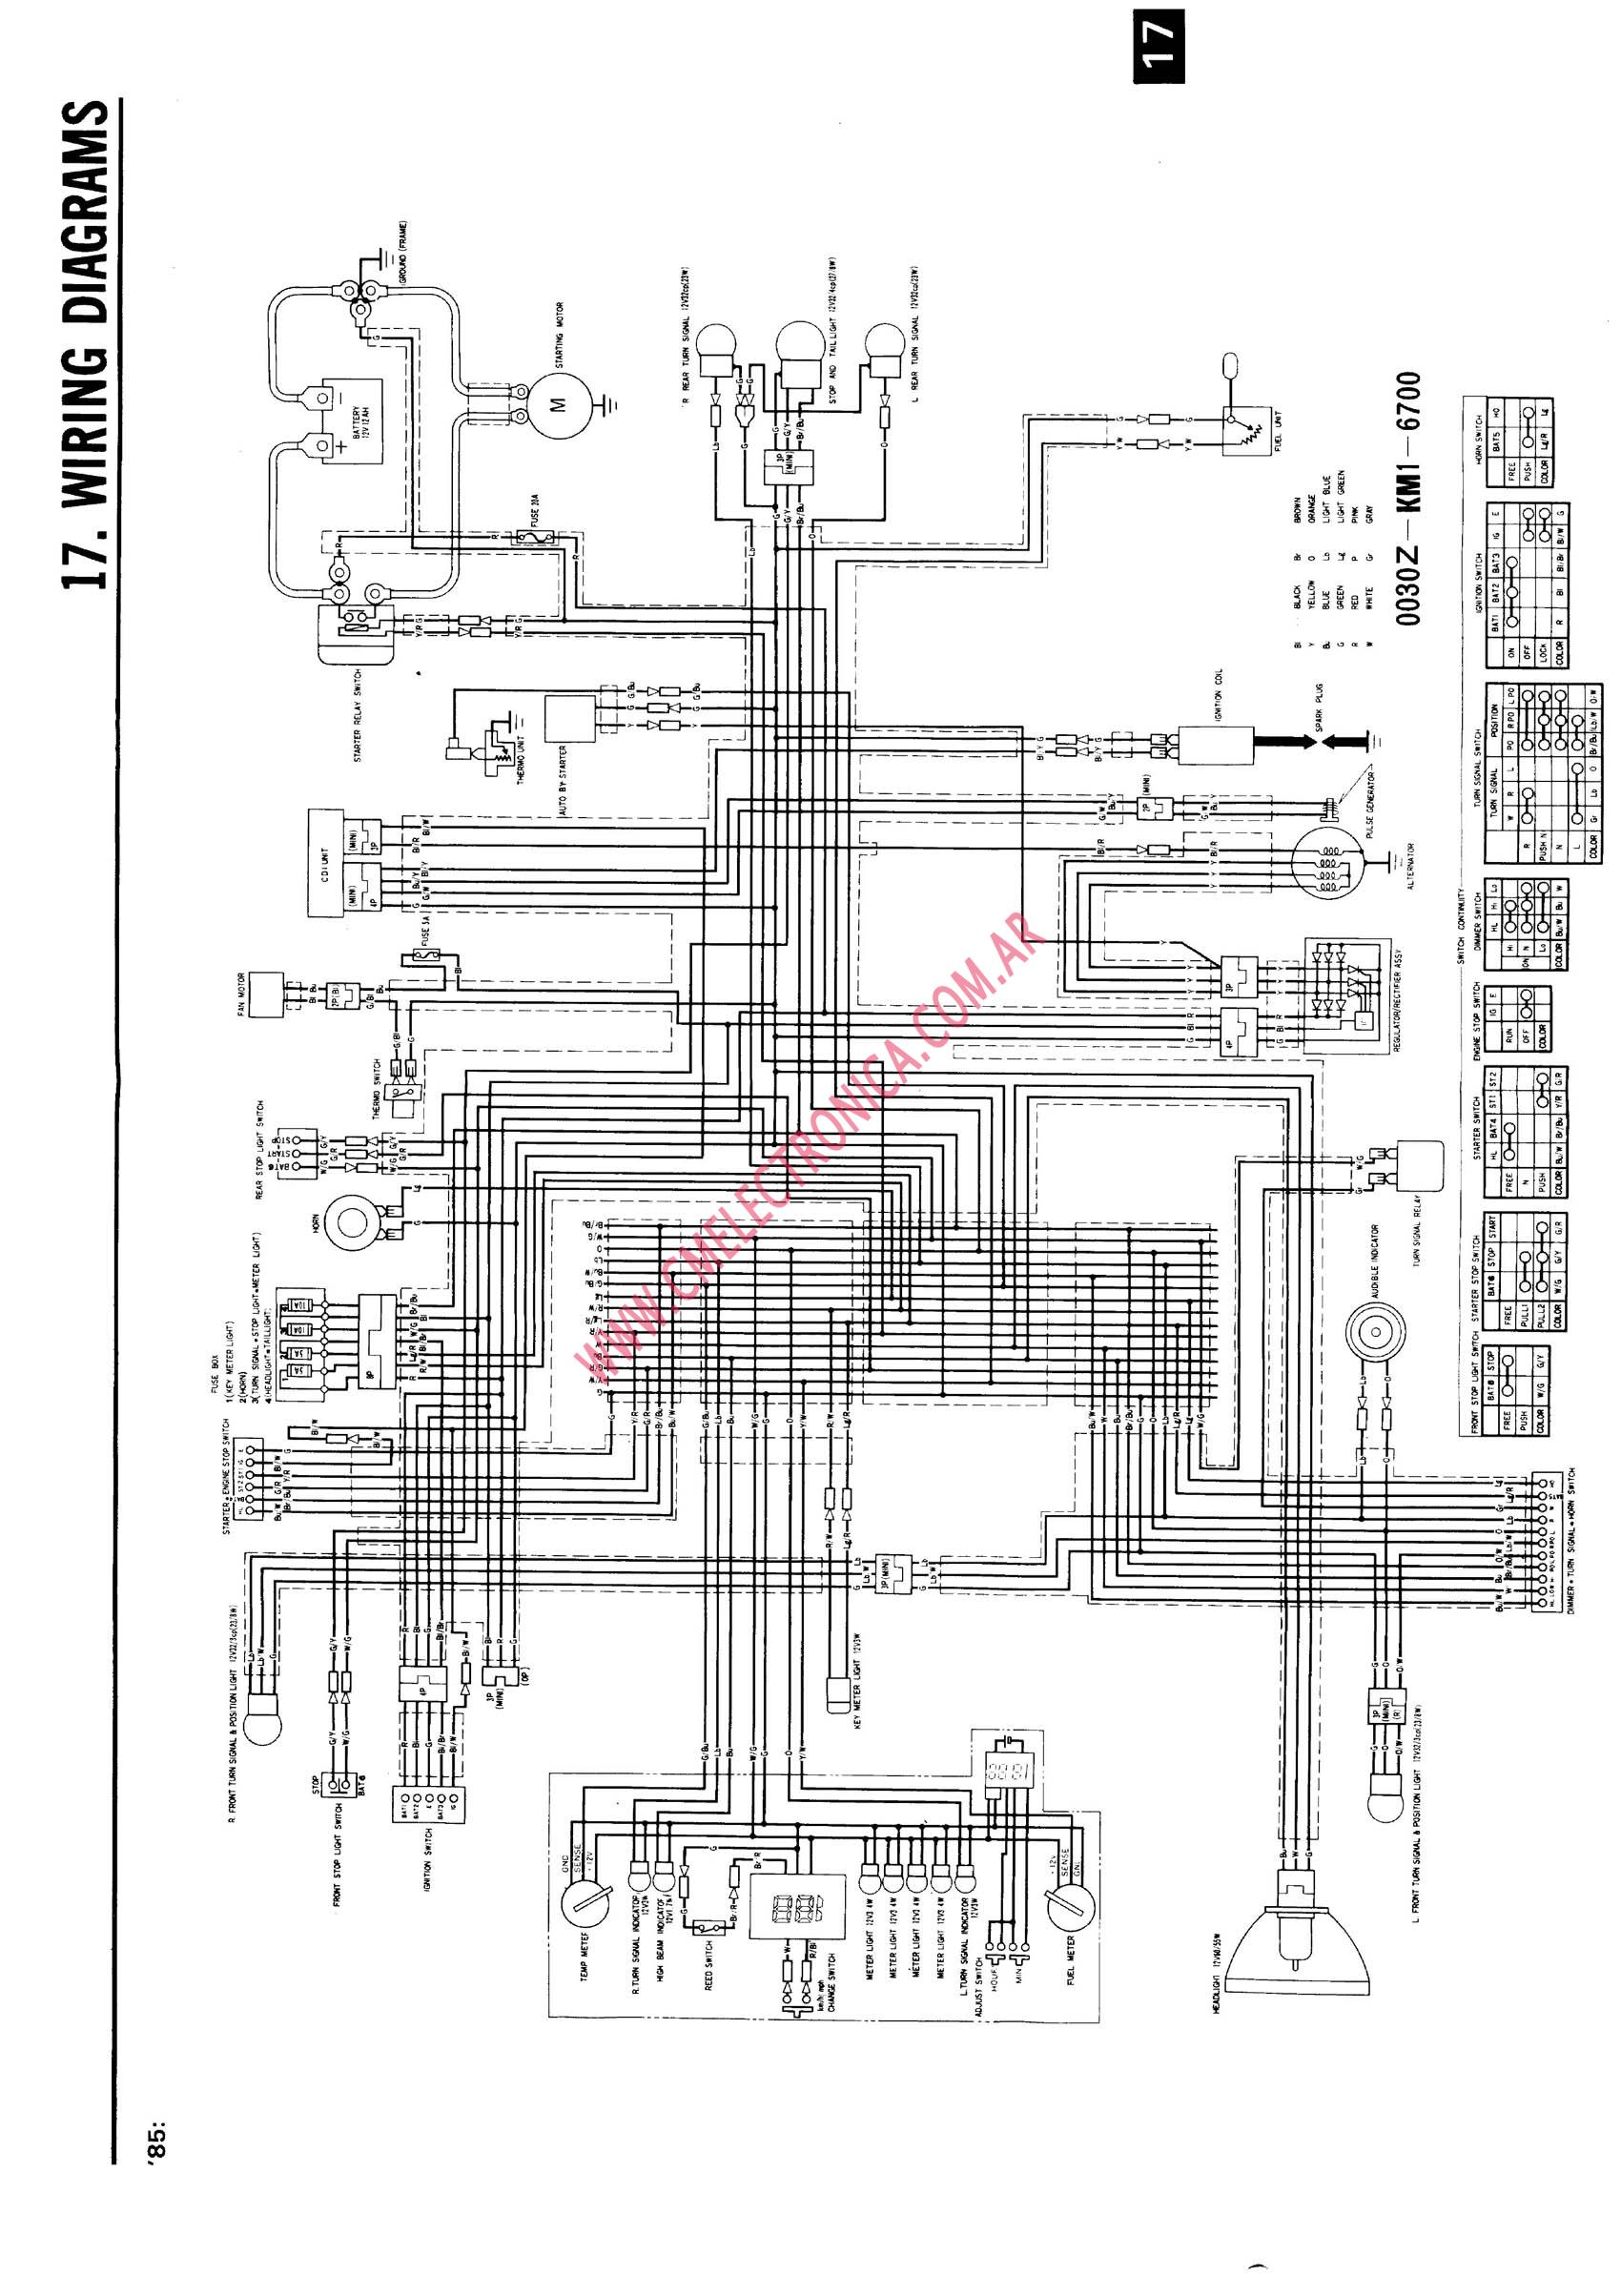 DIAGRAM] Honda Elite 250 Wiring Diagram FULL Version HD Quality Wiring  Diagram - TVDIAGRAM.VIRTUAL-EDGE.ITvirtual-edge.it